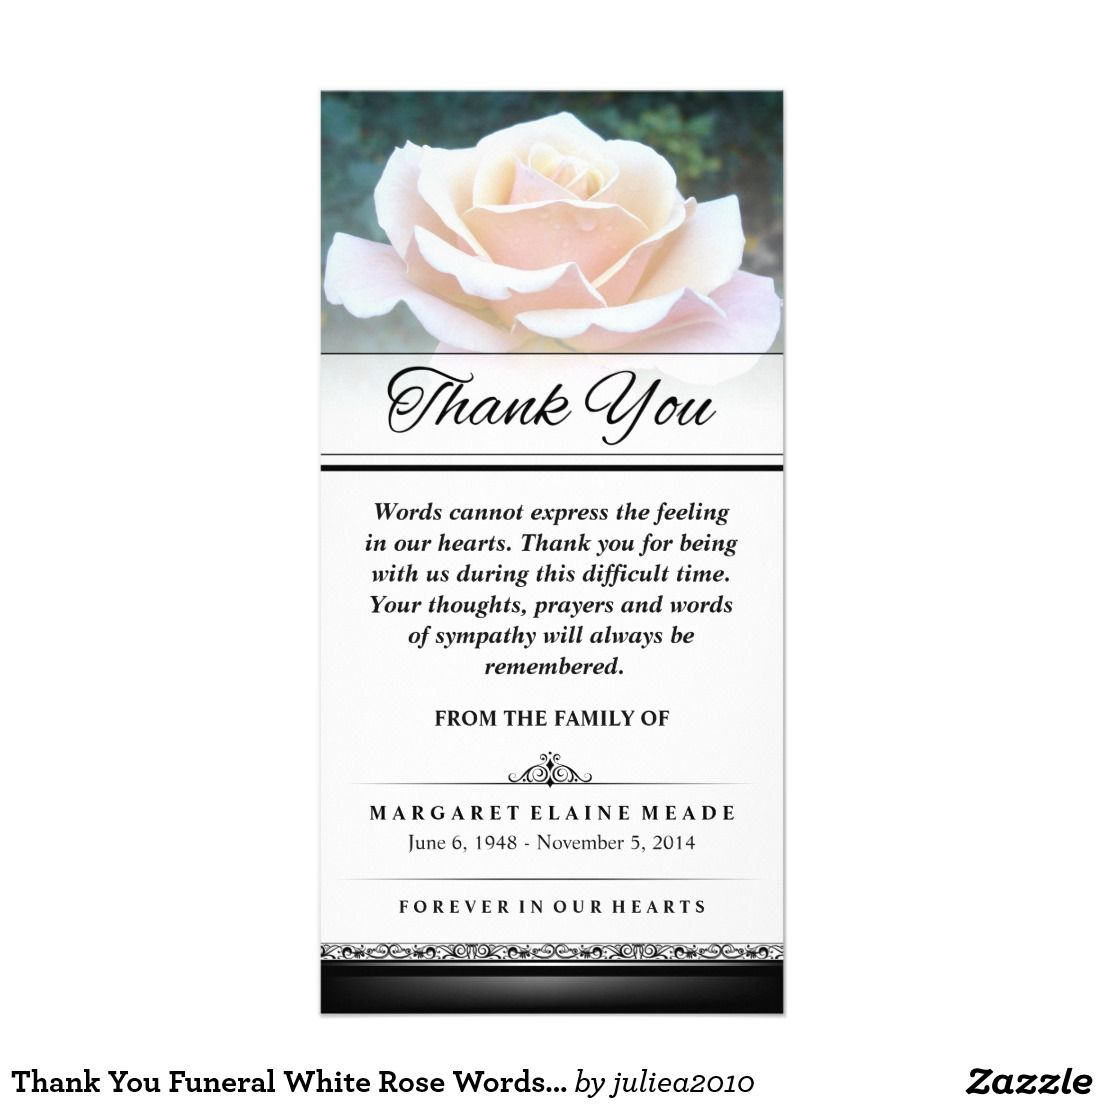 Thank you funeral white rose words cannot express heart cards thank you funeral white rose words cannot express izmirmasajfo